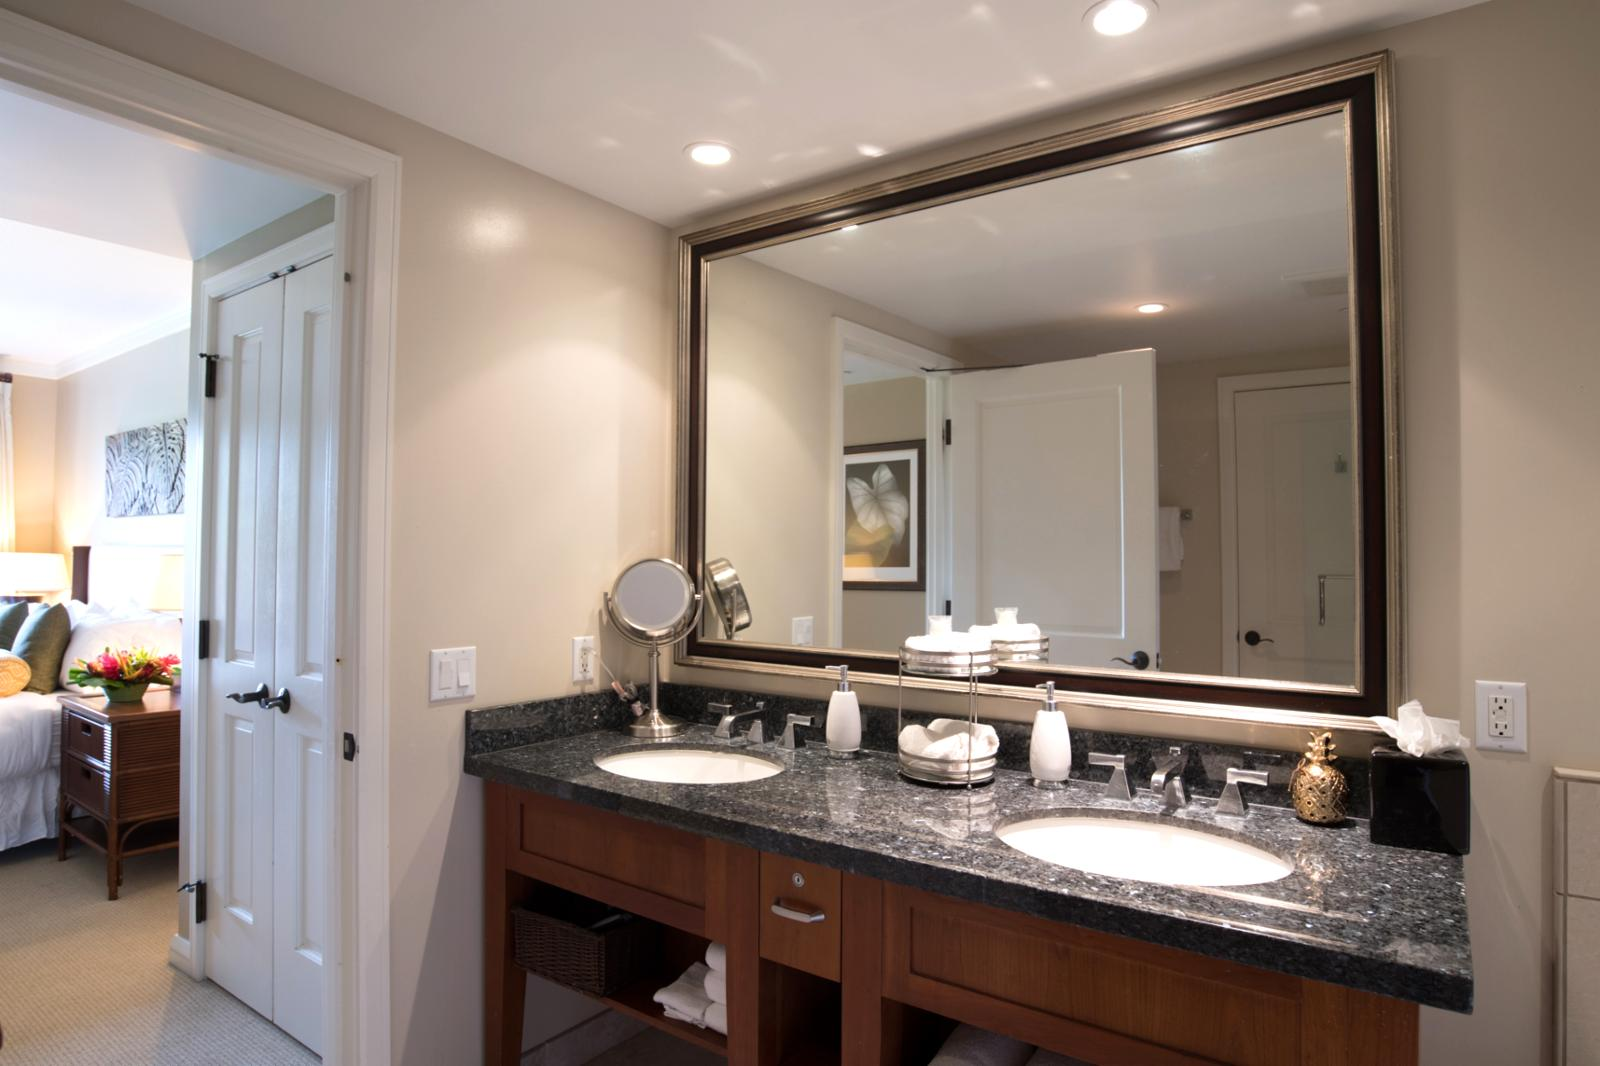 LARGE oversized mirror and layout